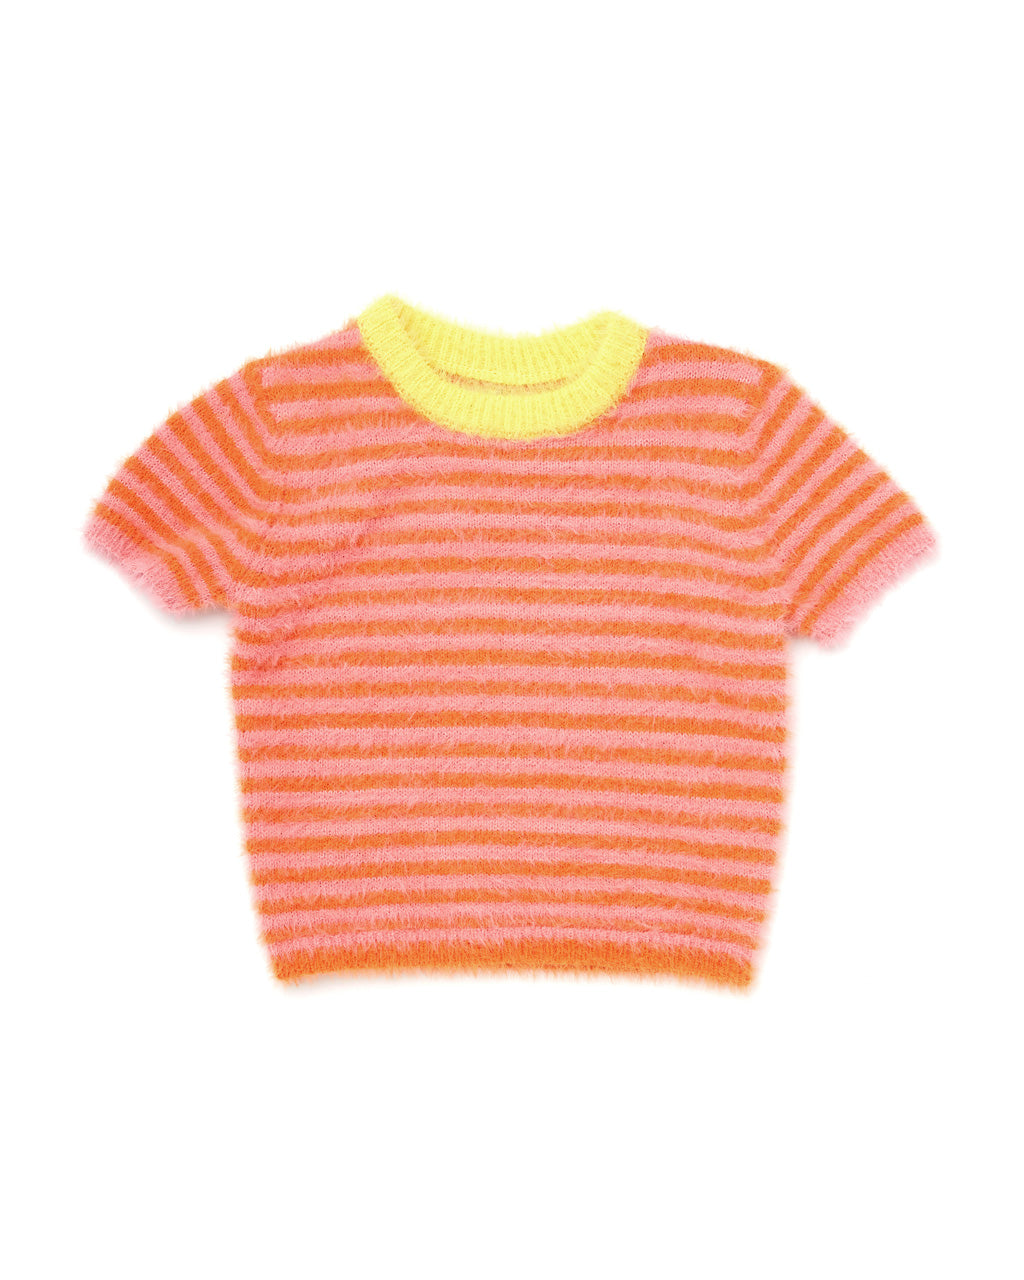 Candy Crop Sweater